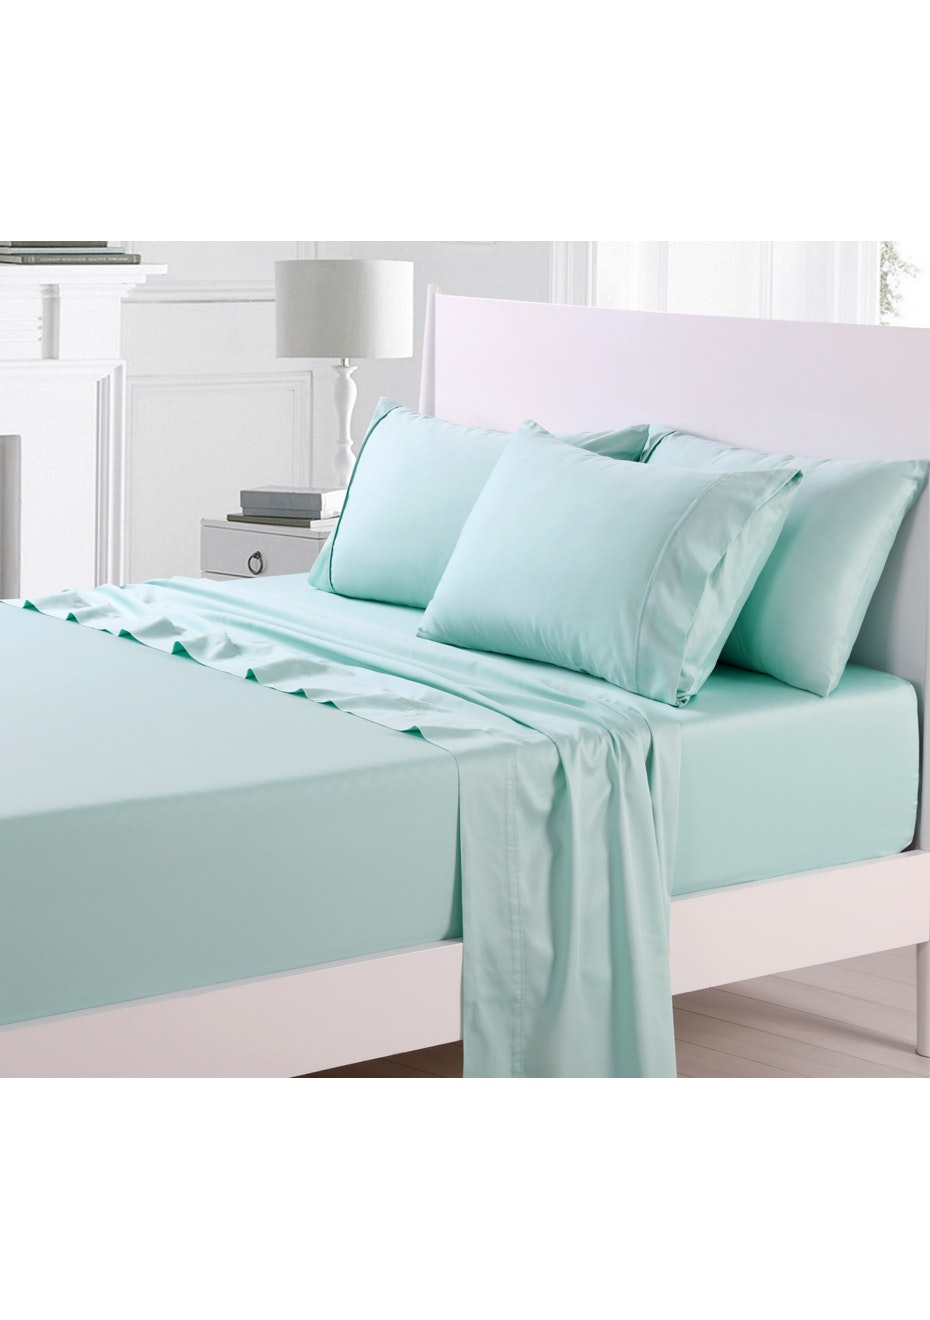 Duckegg 300TC Cotton Sateen Sheet Set - Queen Bed